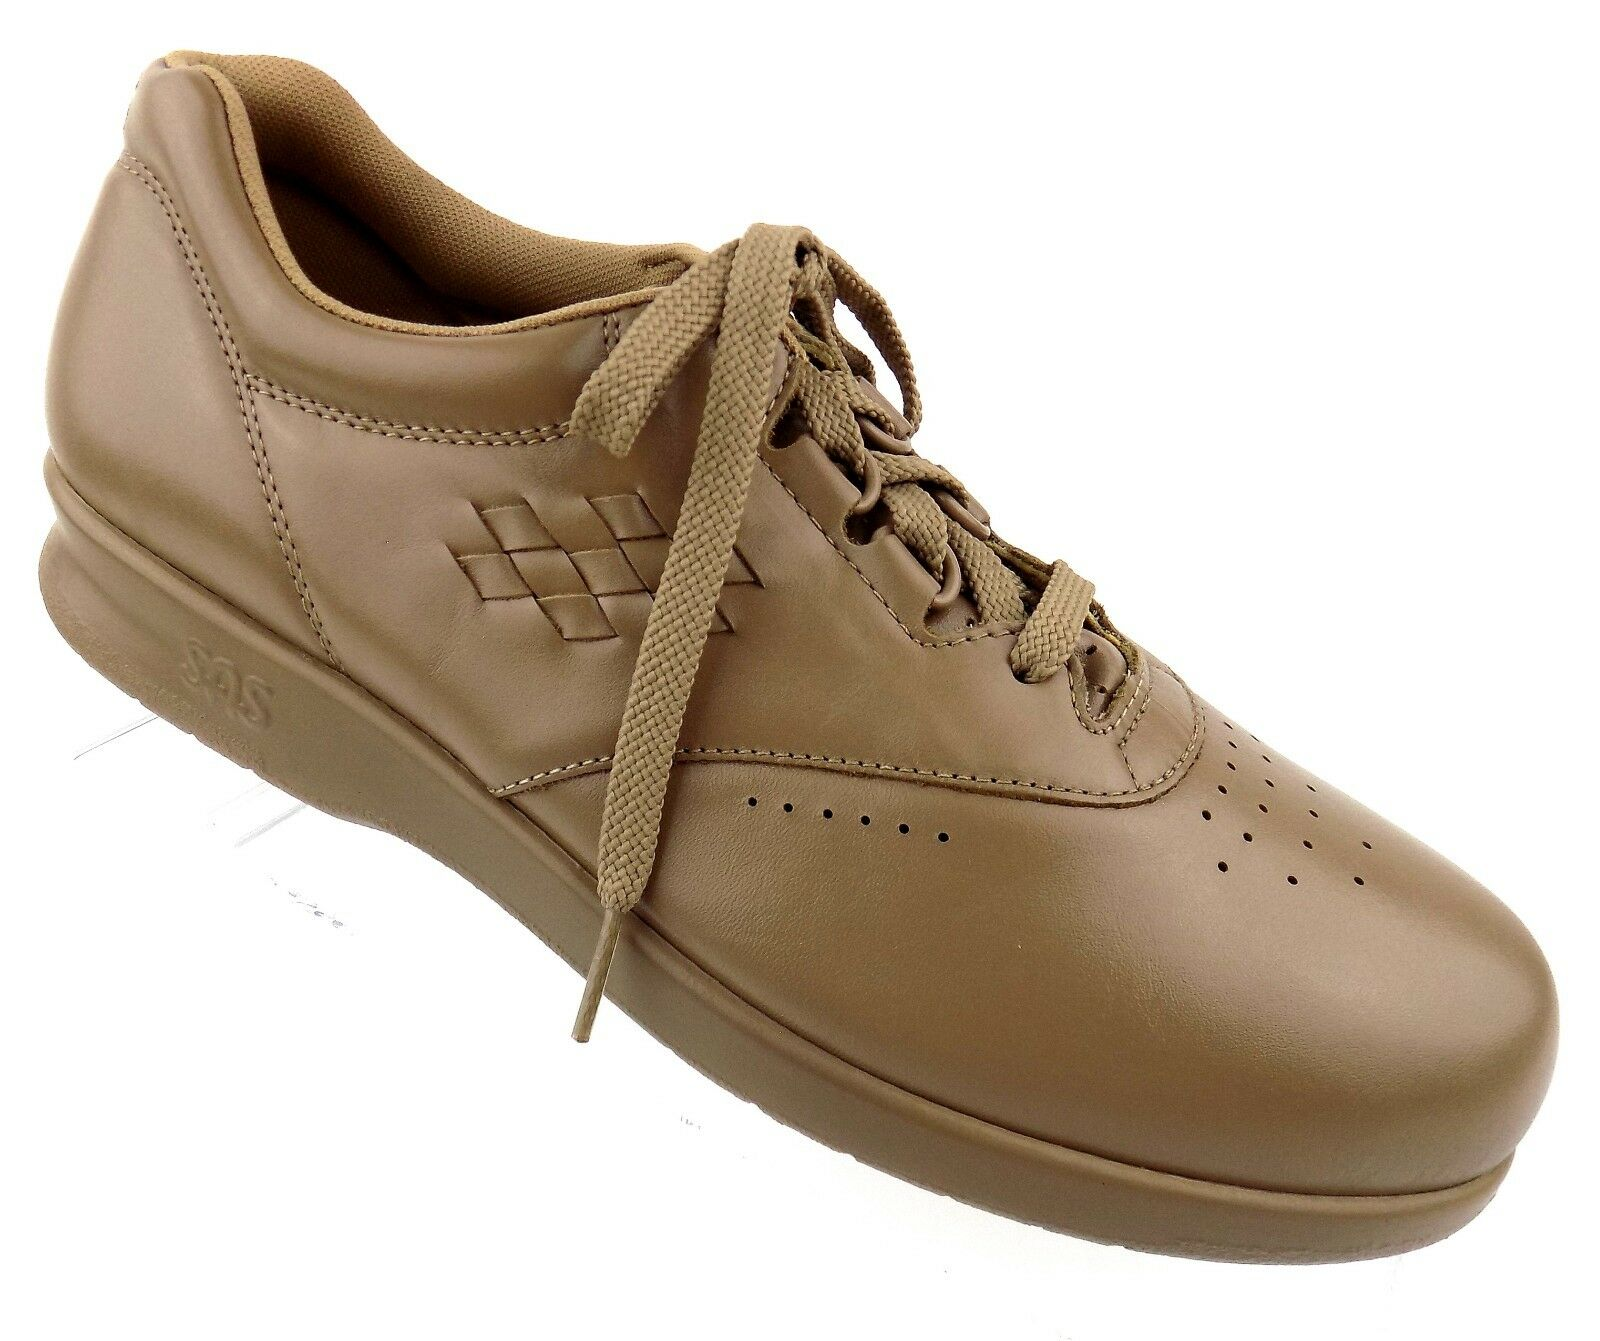 SAS femmes Oxford Walking chaussures Taille 9.5N Tripad Comfort Mocha Leather Lace Up